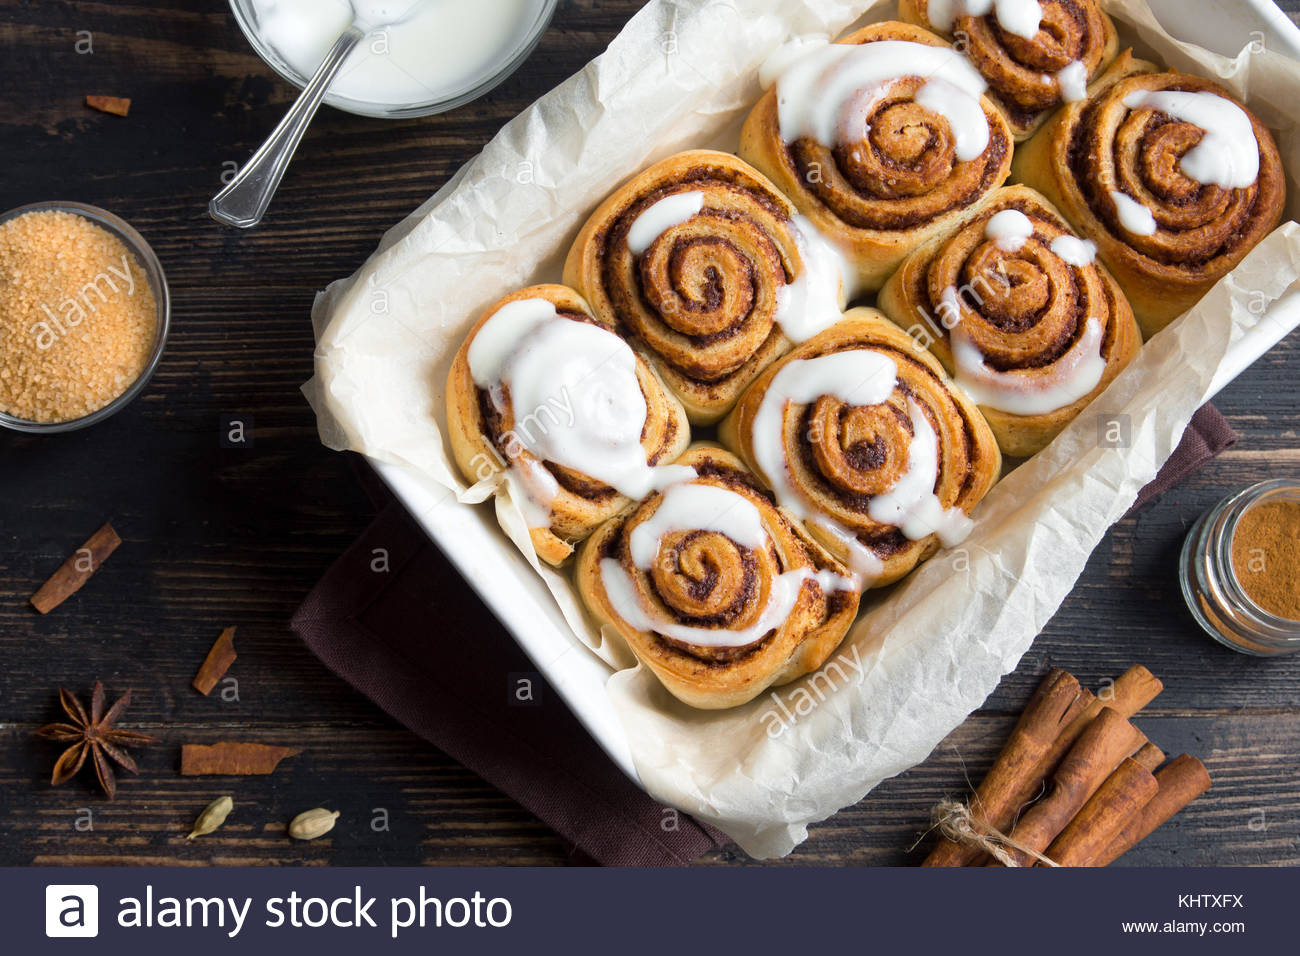 Cinnamon rolls or cinnabon with sauce homemade traditional 1300x956